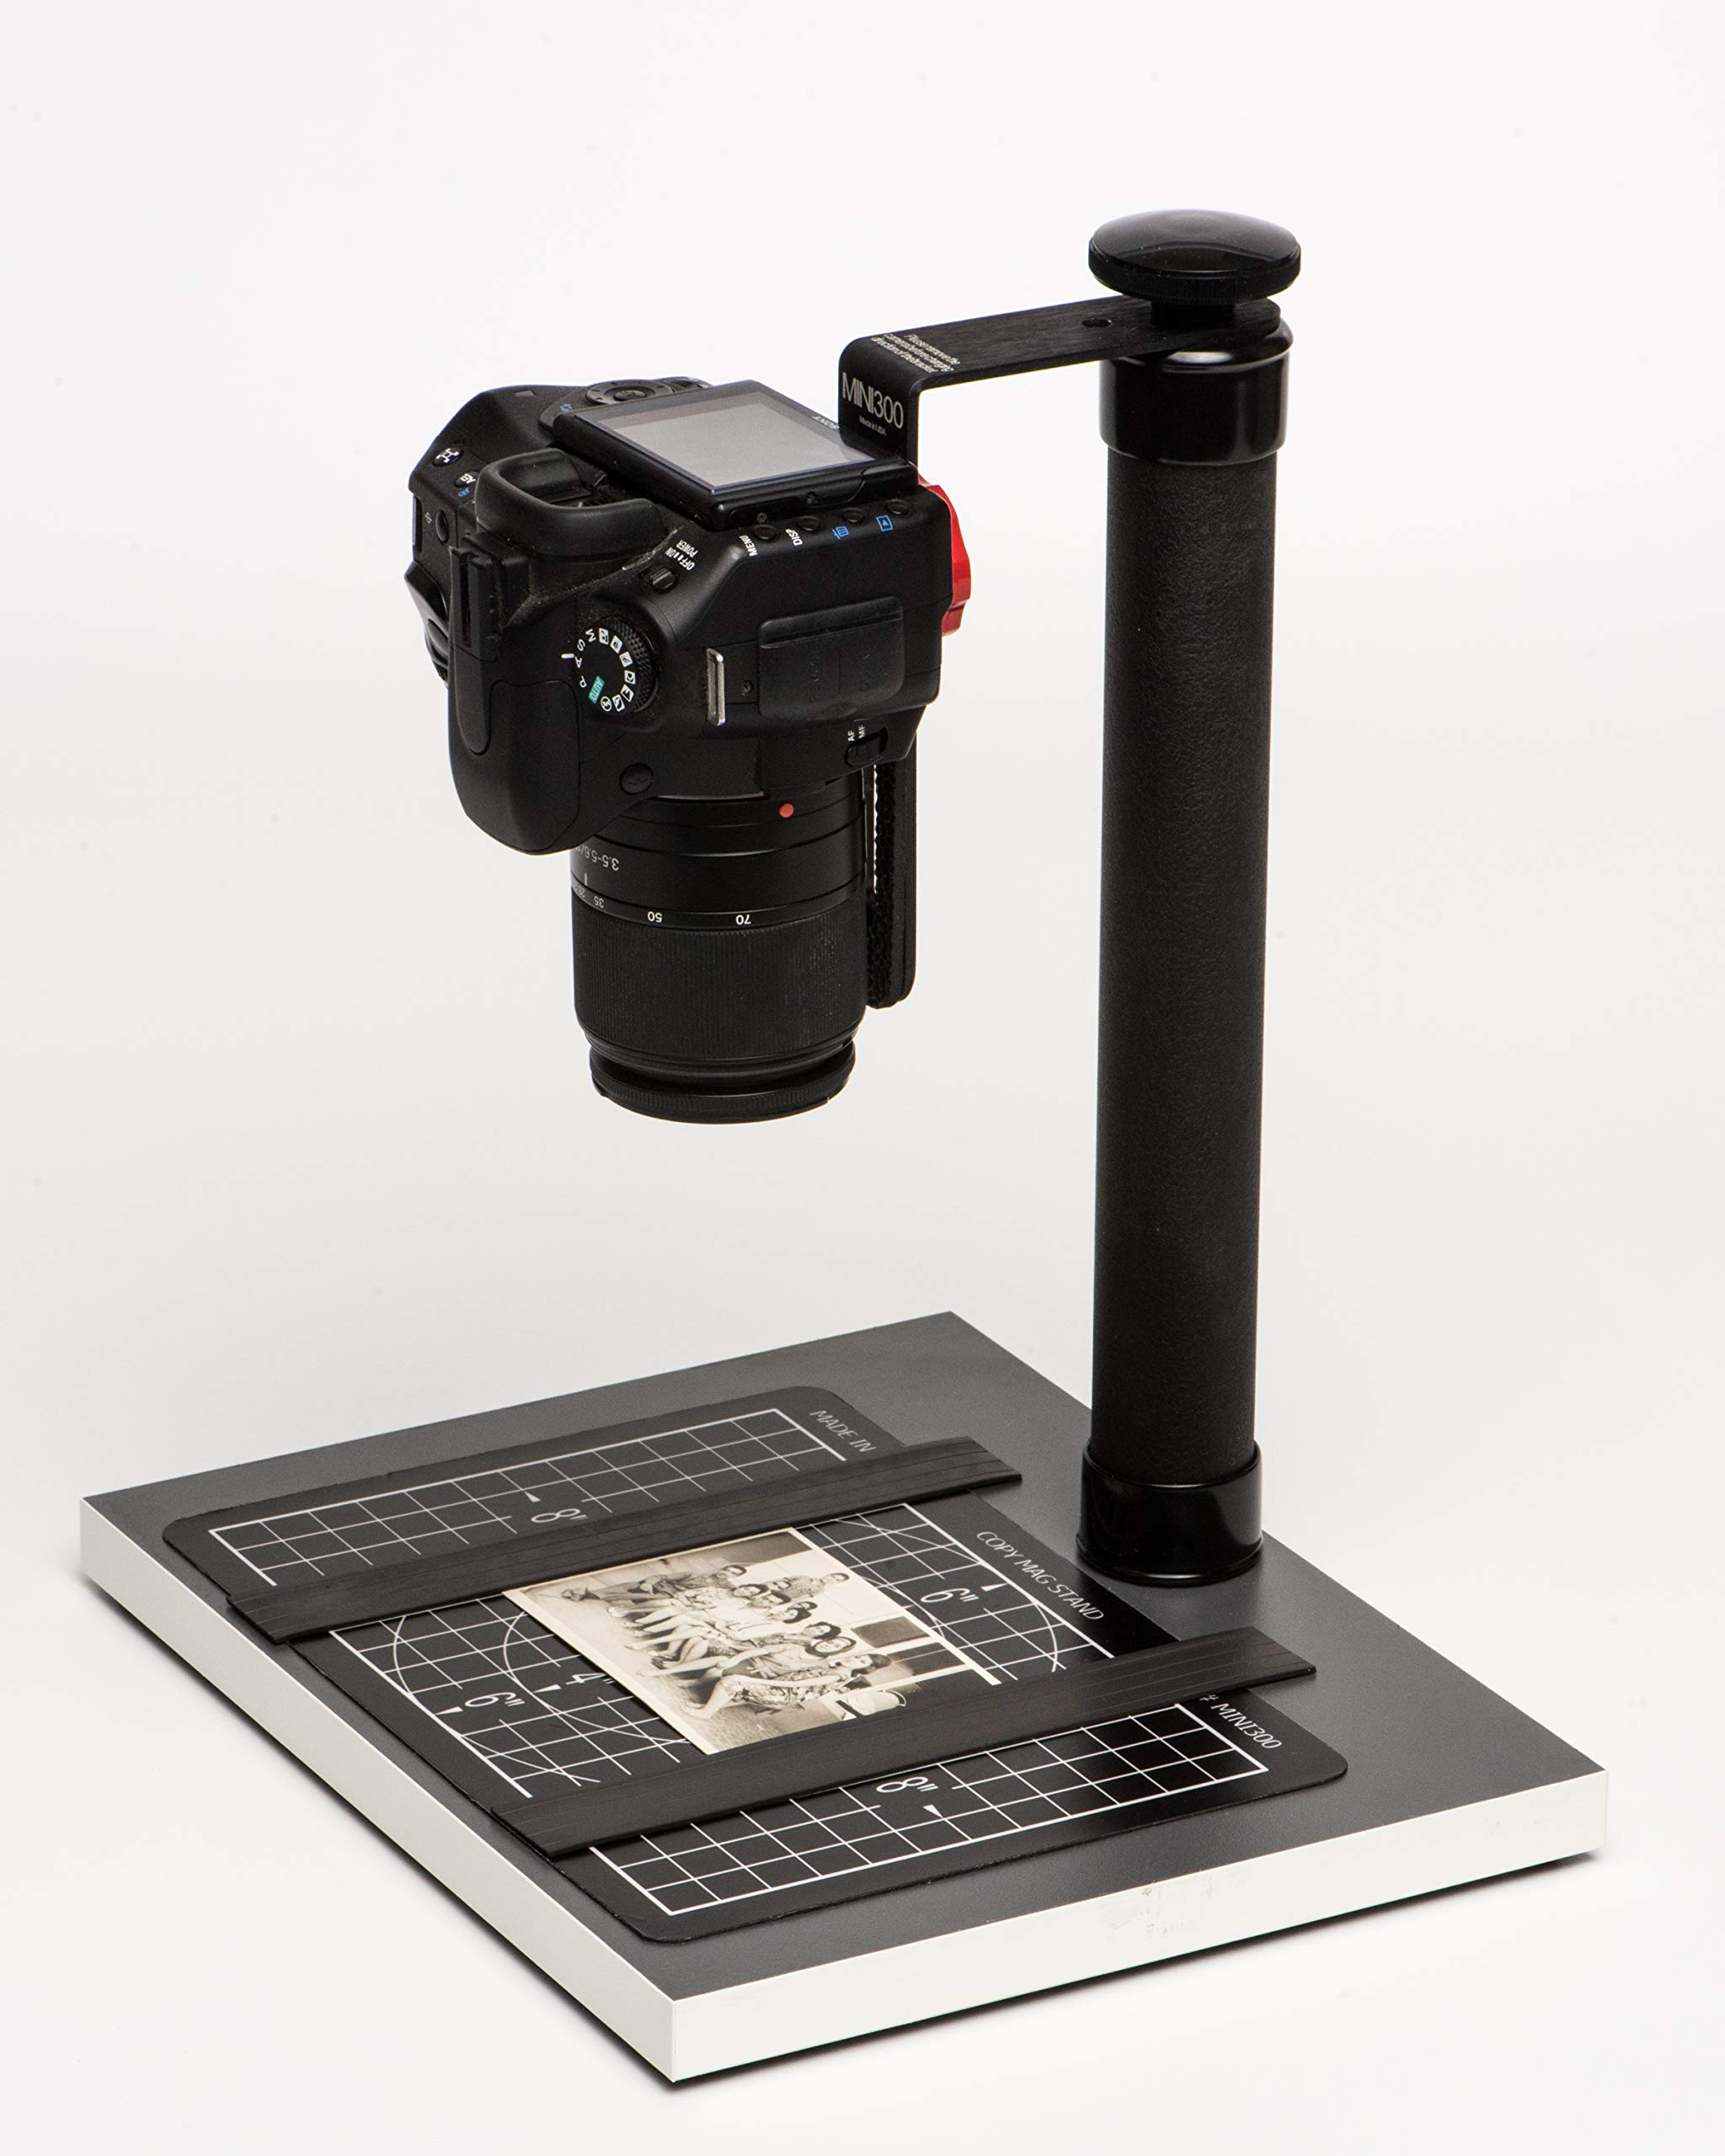 COPY STAND # MINI300, A Compact & Mini Tool for Digitizing Documents, Photos, or Small Objects with Today's SLR Super Megapixel Cameras by Stand Company (Image #4)